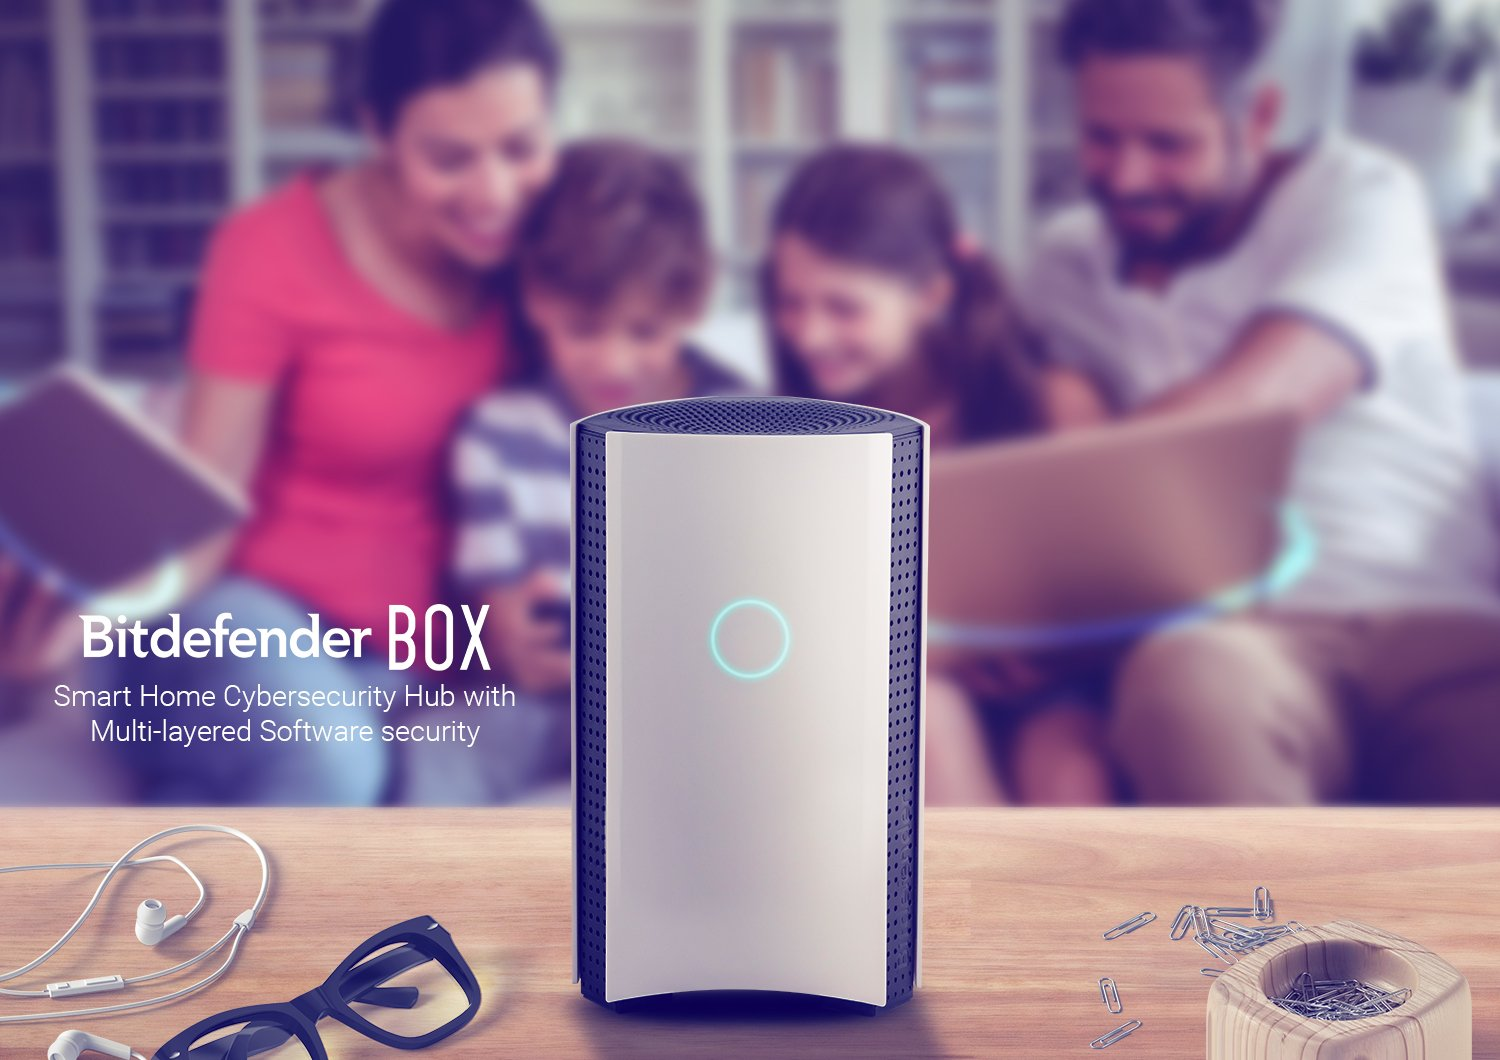 Bitdefender BOX 2 (Latest Version) - Complete Home Network Protection for Your WiFi, Computers, Mobile/Smart Devices and More, Including Alexa and Google Assistant Integration - Plugs Into Your Router 7 Plugs into your (Non-Mesh/Non Google WiFi) router and protects an unlimited number of Wi-Fi and internet connected devices Includes free unlimited BOX support and product setup (a $39.99 value). Before buying, please make sure that your Router can be configured to AP (access point) mode or Bridge mode otherwise BOX 2 will not work BOX automatically detects and optimizes for all your devices during the first 48 hour post-install window. Once complete, experience a protected network with speeds up to 1 Gbps thanks to the 1.2 GHz Dual Core processor and dual 1 Gbps ethernet ports